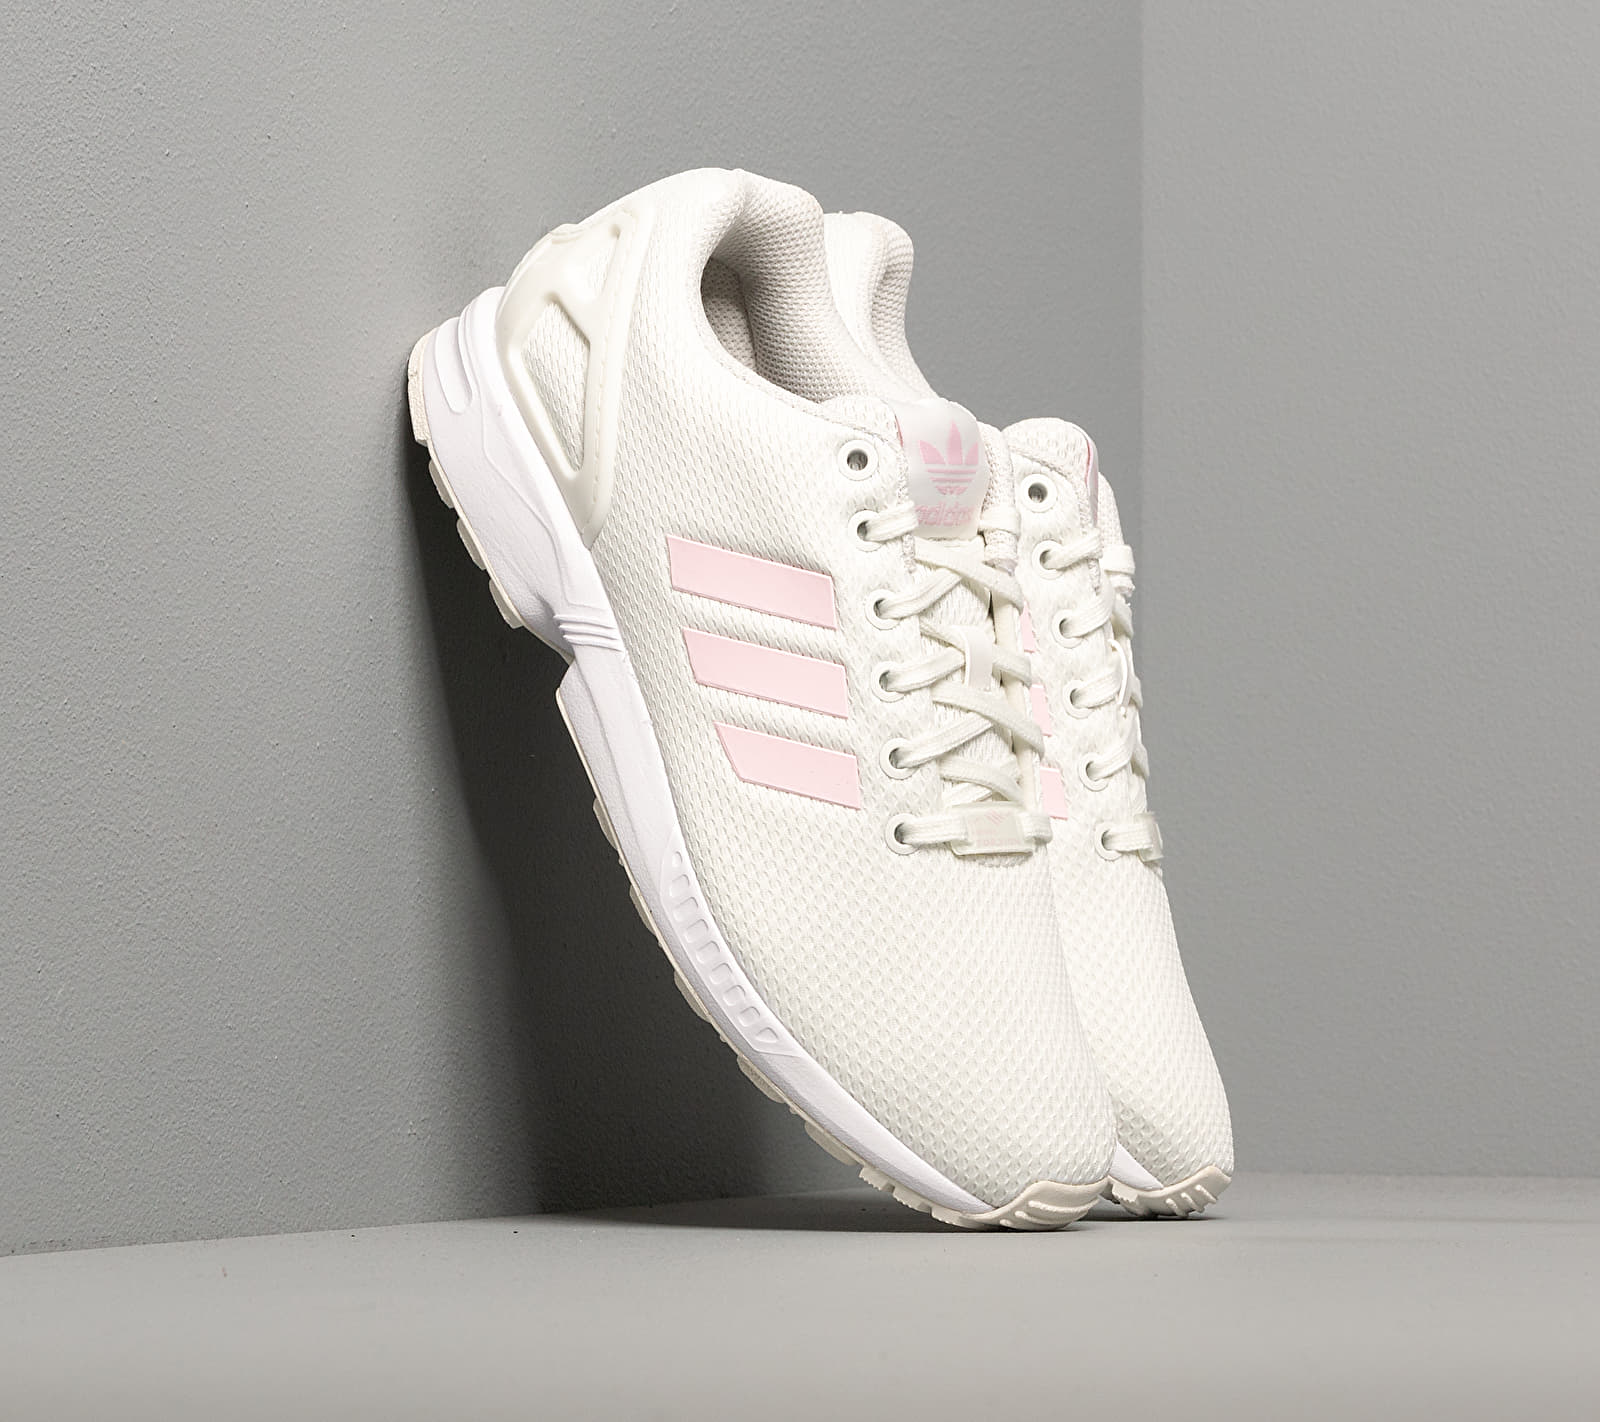 adidas ZX Flux W White Tint/ Clear Pink/ Core Black EUR 40